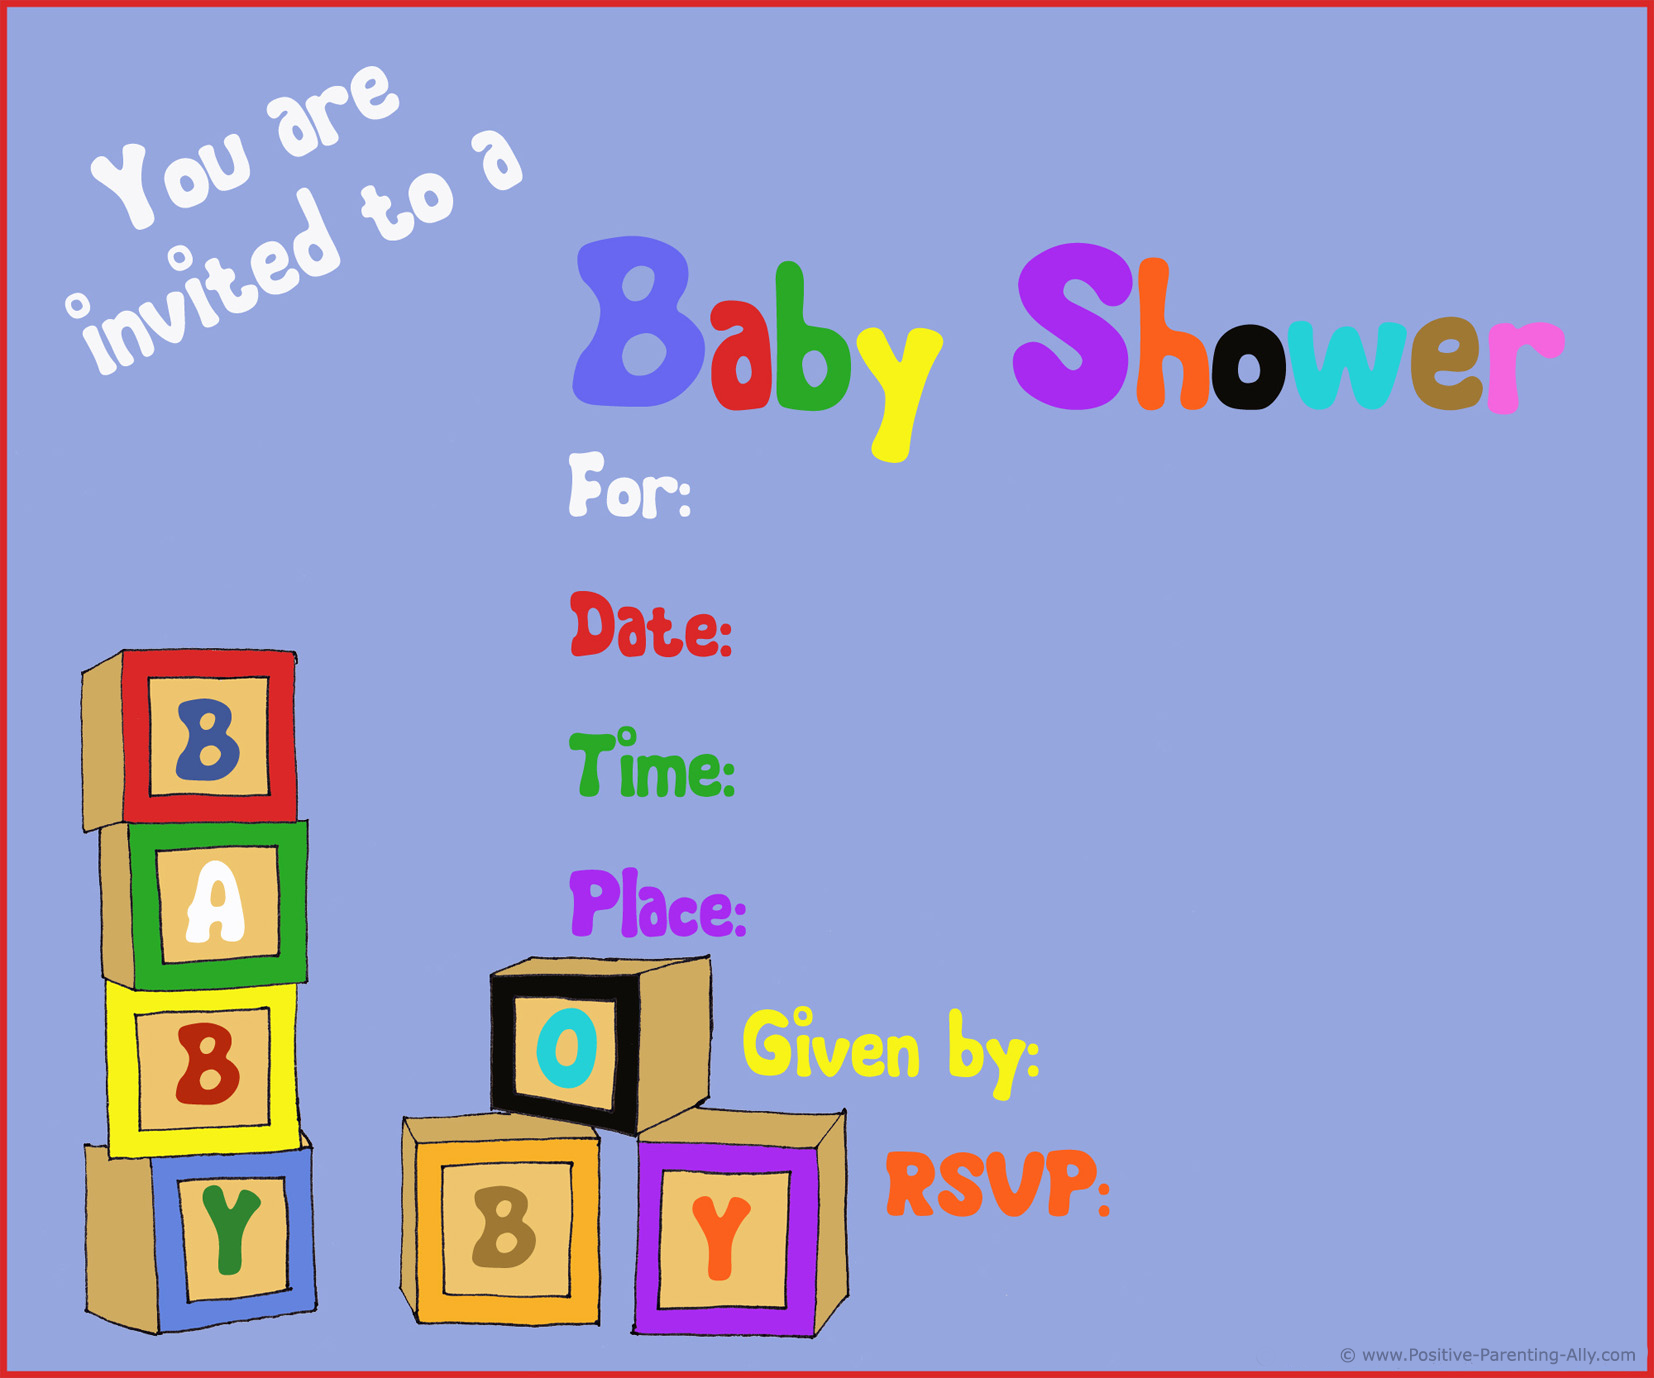 Printable baby shower invitations with toy blocks for boys.